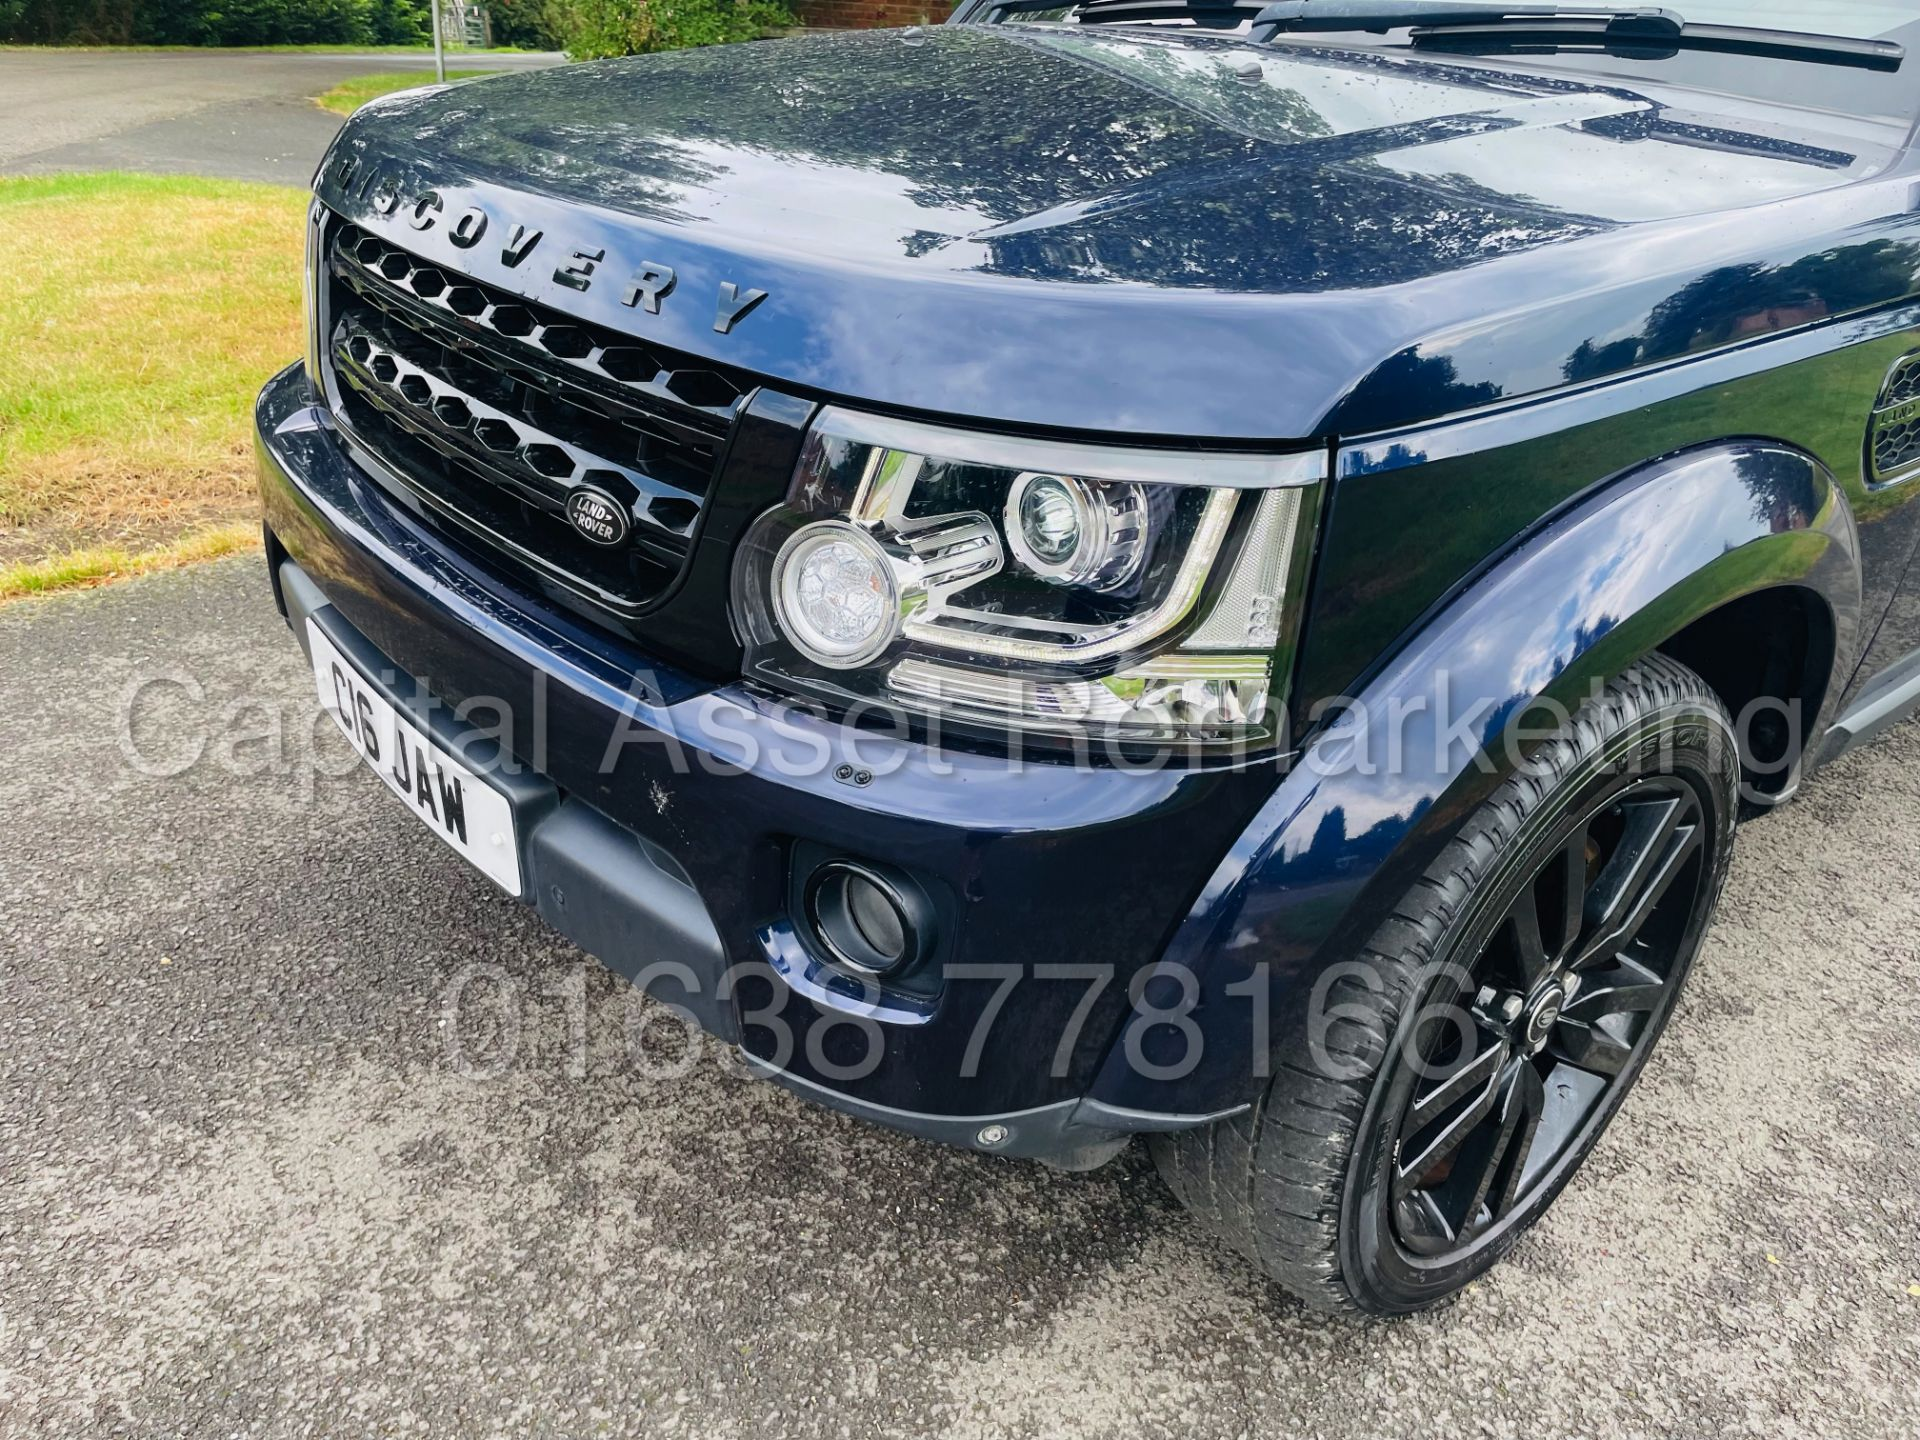 LAND ROVER DISCOVERY 4 *HSE* 7 SEATER SUV (2014 - NEW MODEL) '3.0 SDV6 - 255 BHP - 8 SPEED AUTO' - Image 16 of 61